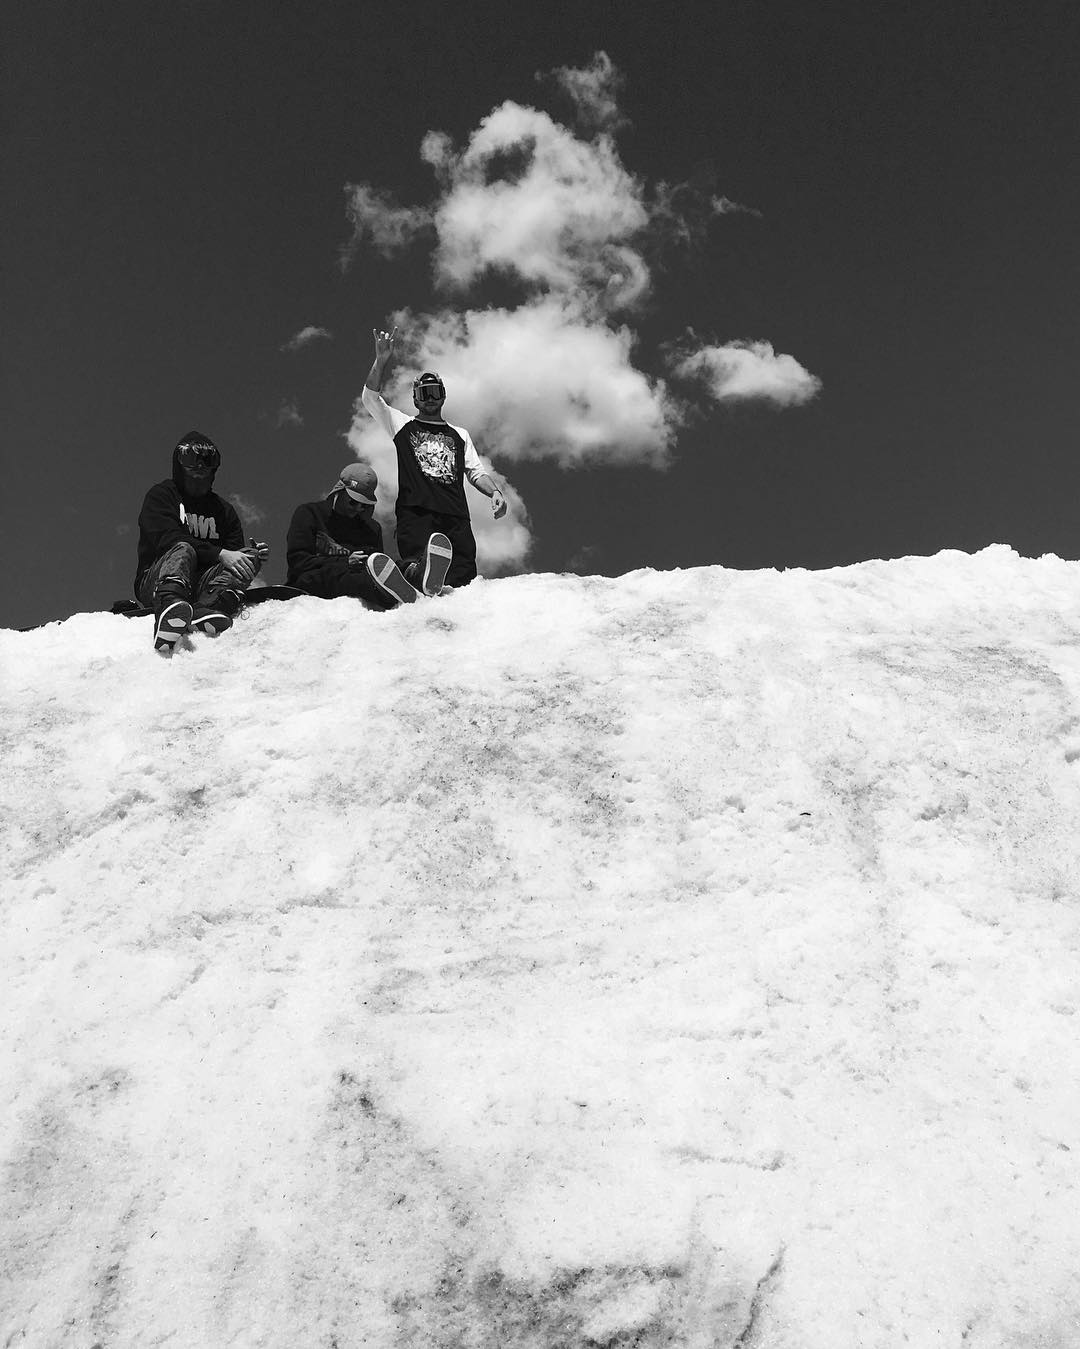 We heard from @snowboardmag these 3, (@sleepystevens, @bcocard, @joesexton1817) are really enjoying the #Colorado summer.